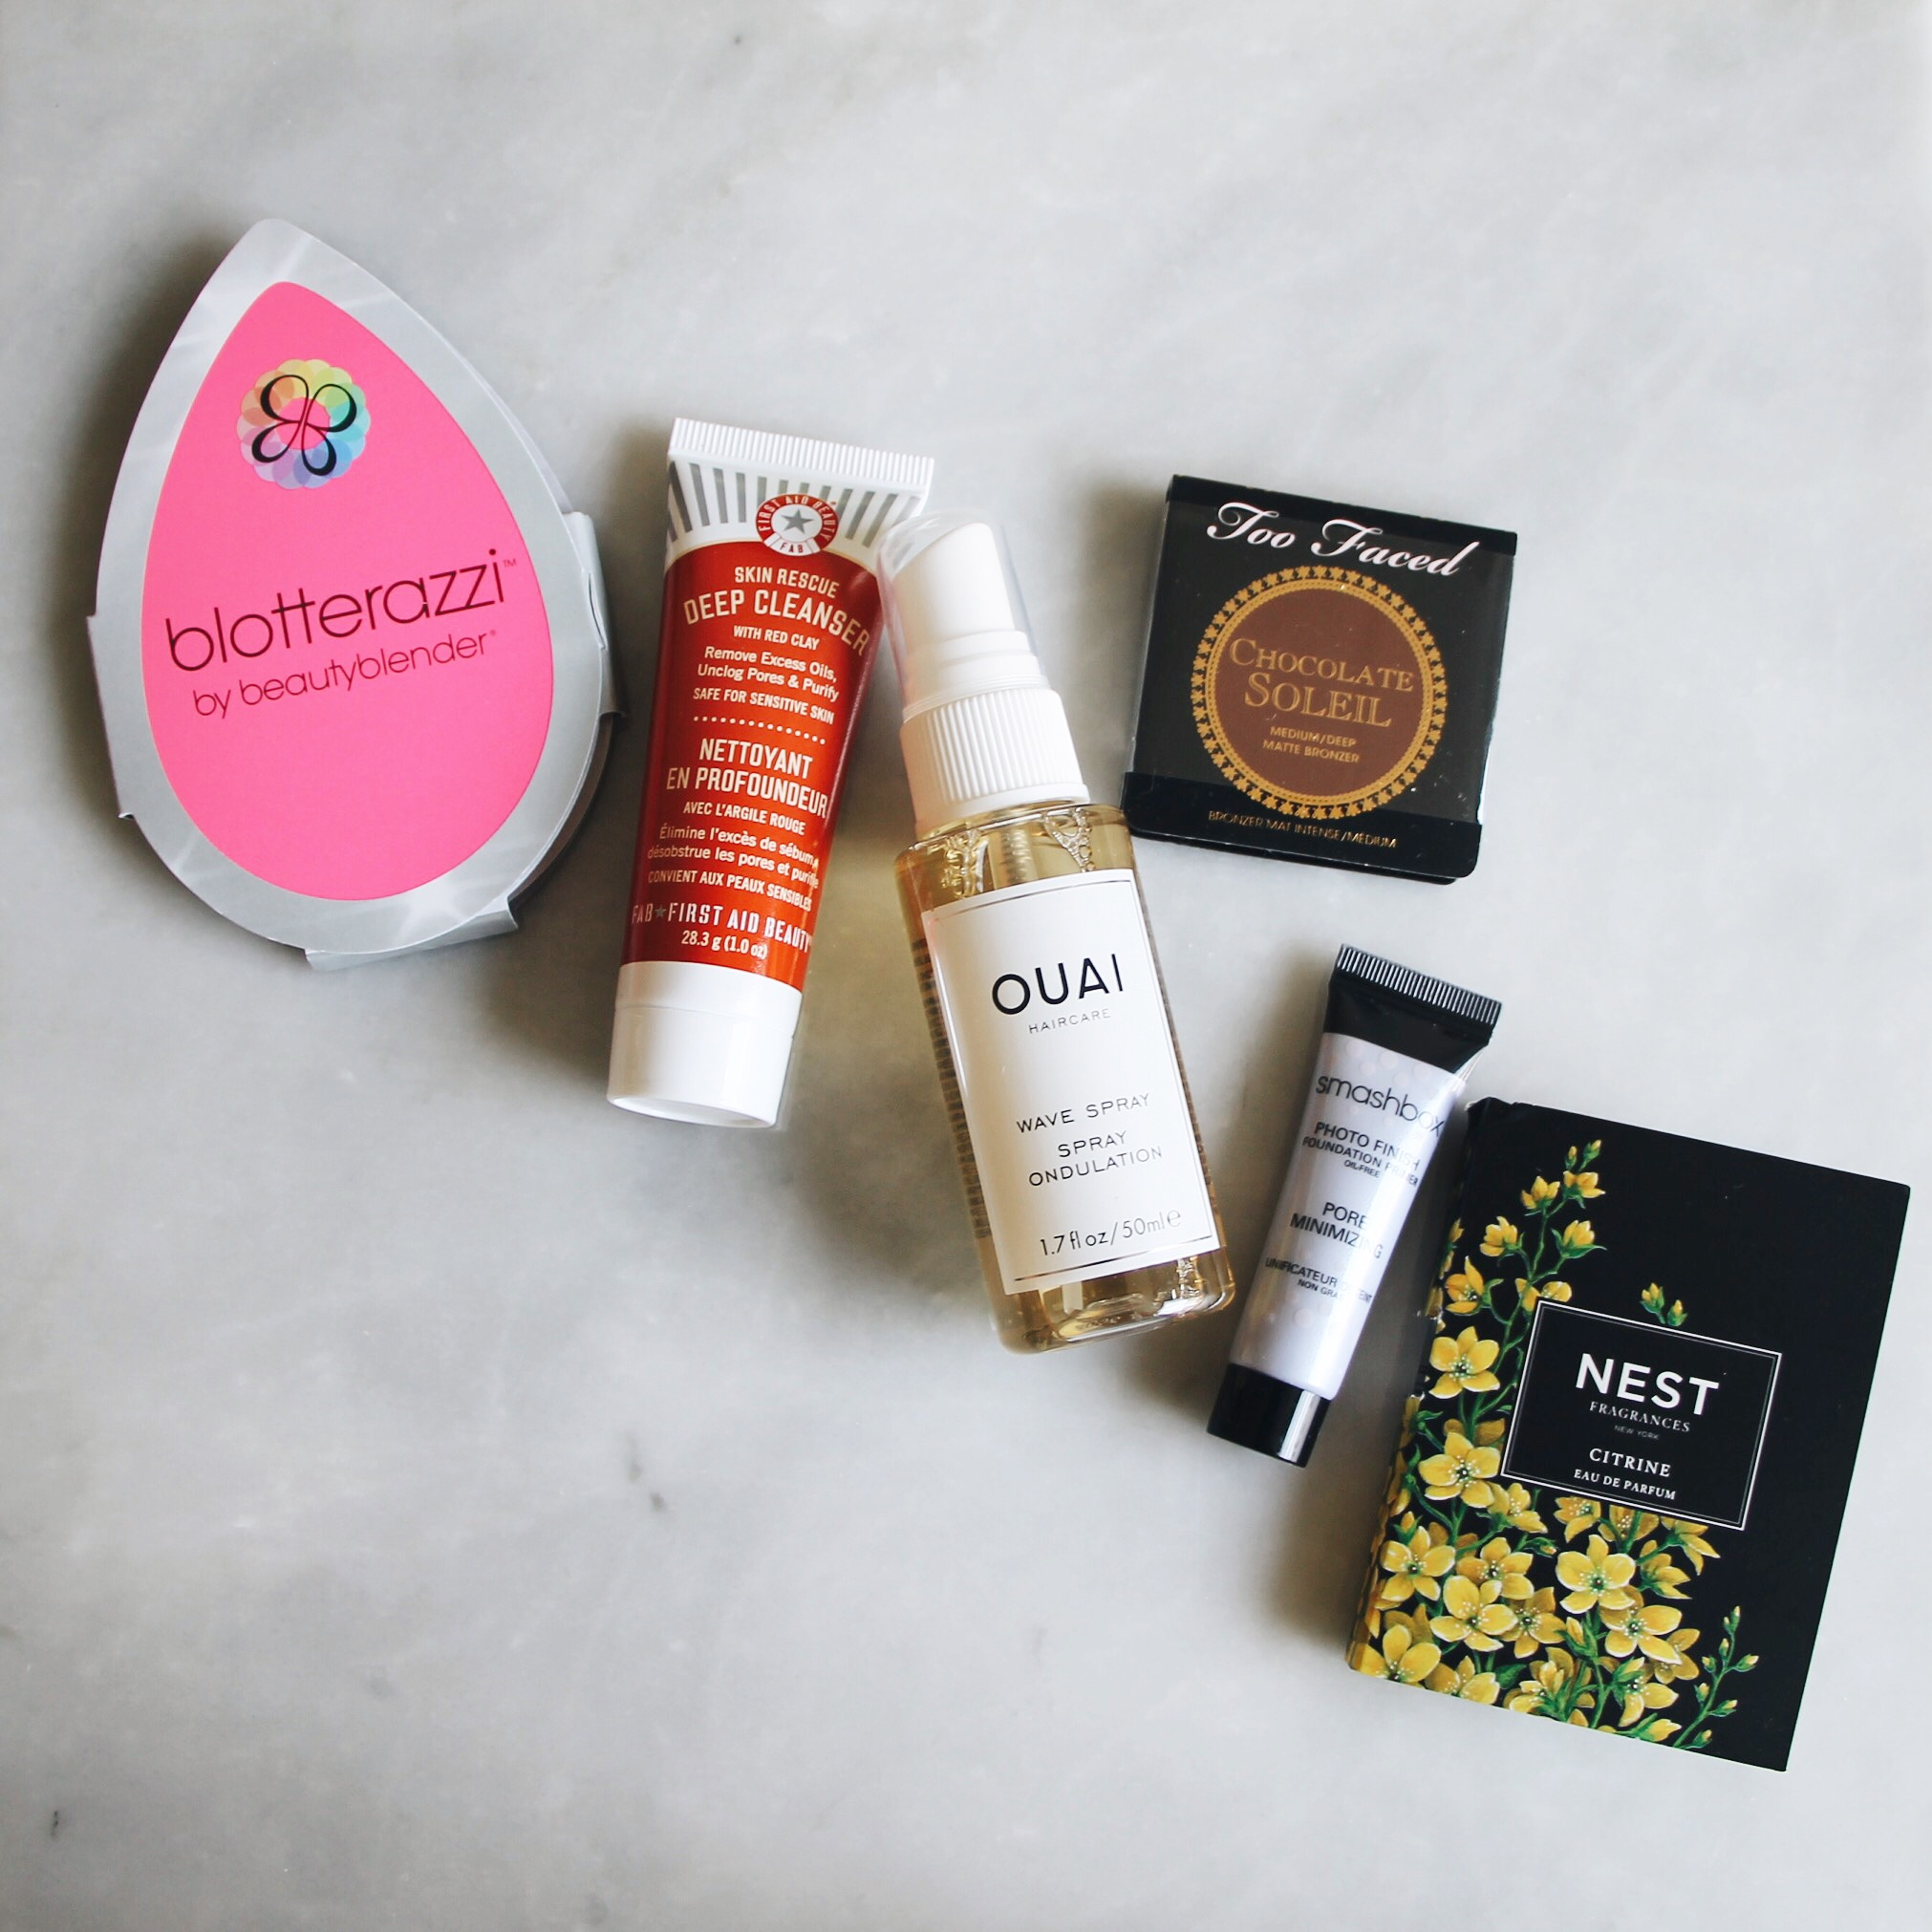 July 2016 Play! By Sephora Subscription Box Reveal, Sephora Play Box, Play by Sephora, Sephora Subscription Box, July 16 Sephora Play Box, Ouai Sample, Ouai Haircare, Nest Fragrance, First Aid Beauty, Beautyblender, Too Faced, Smashbox